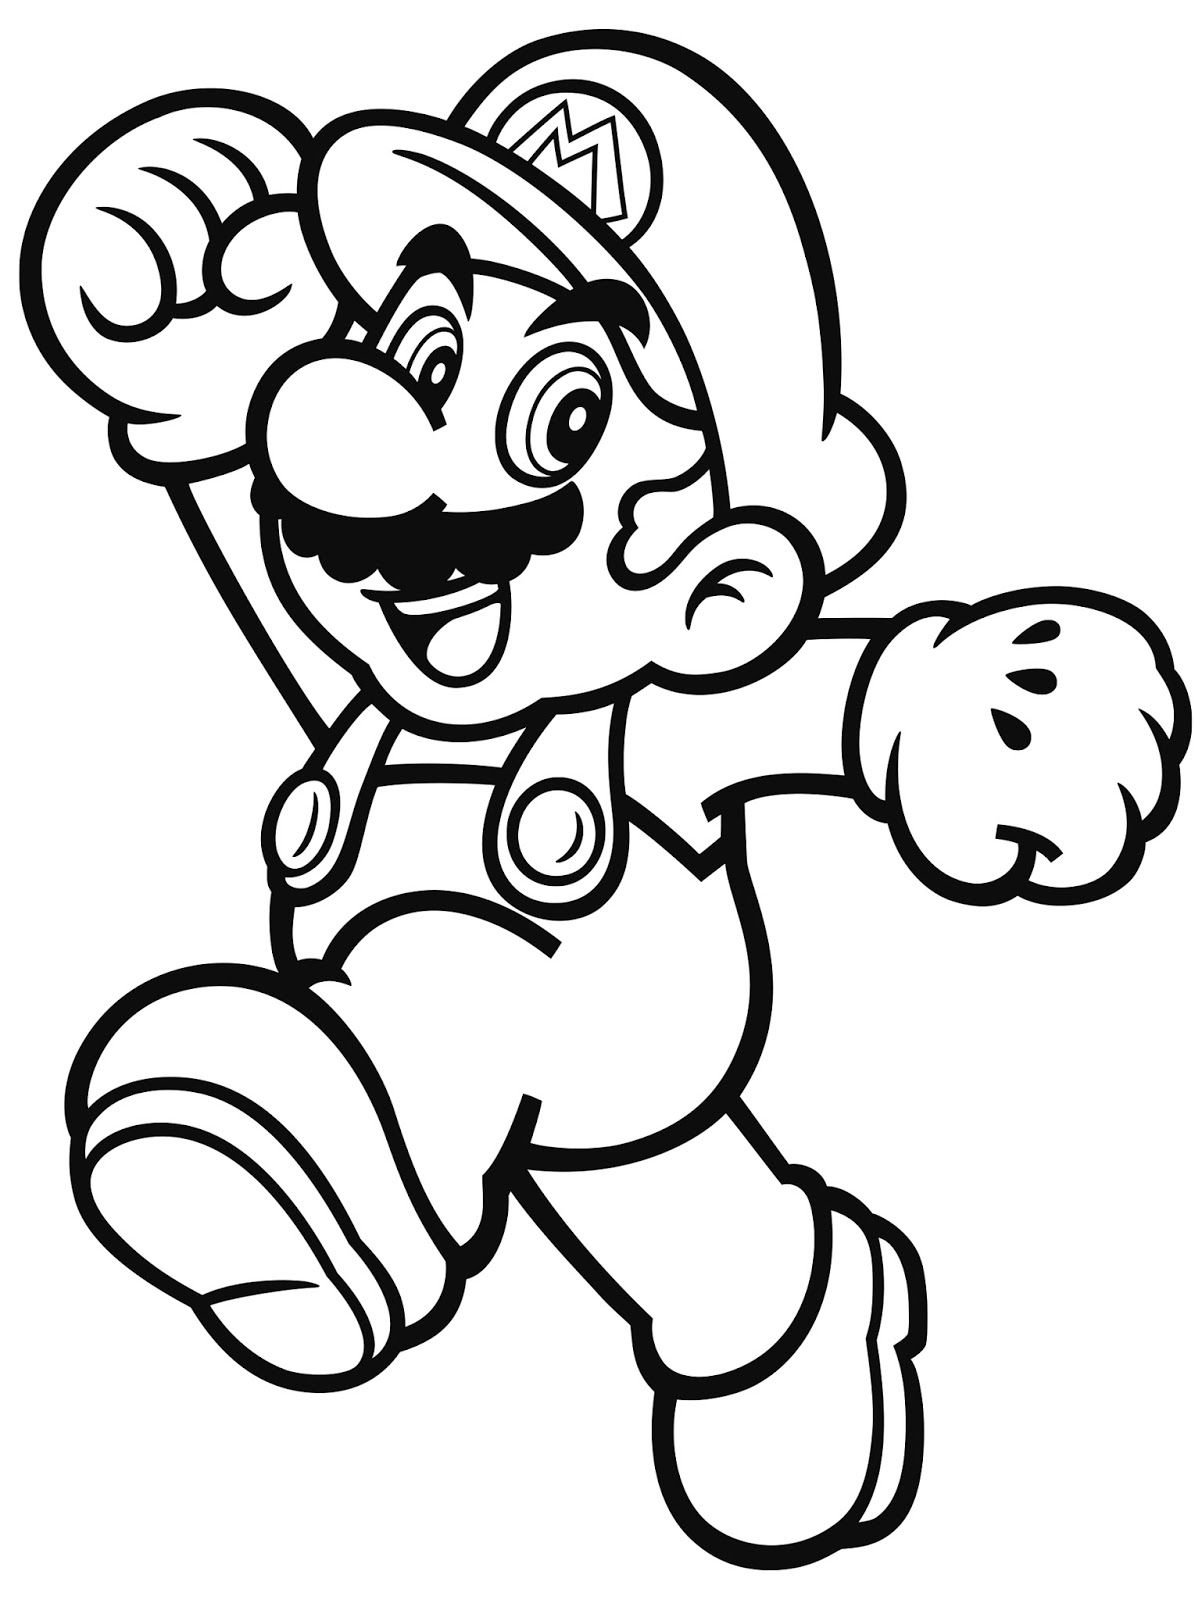 Pin By Erin On Coloring Pages Cartoon Coloring Pages Mario Coloring Pages Super Mario Coloring Pages